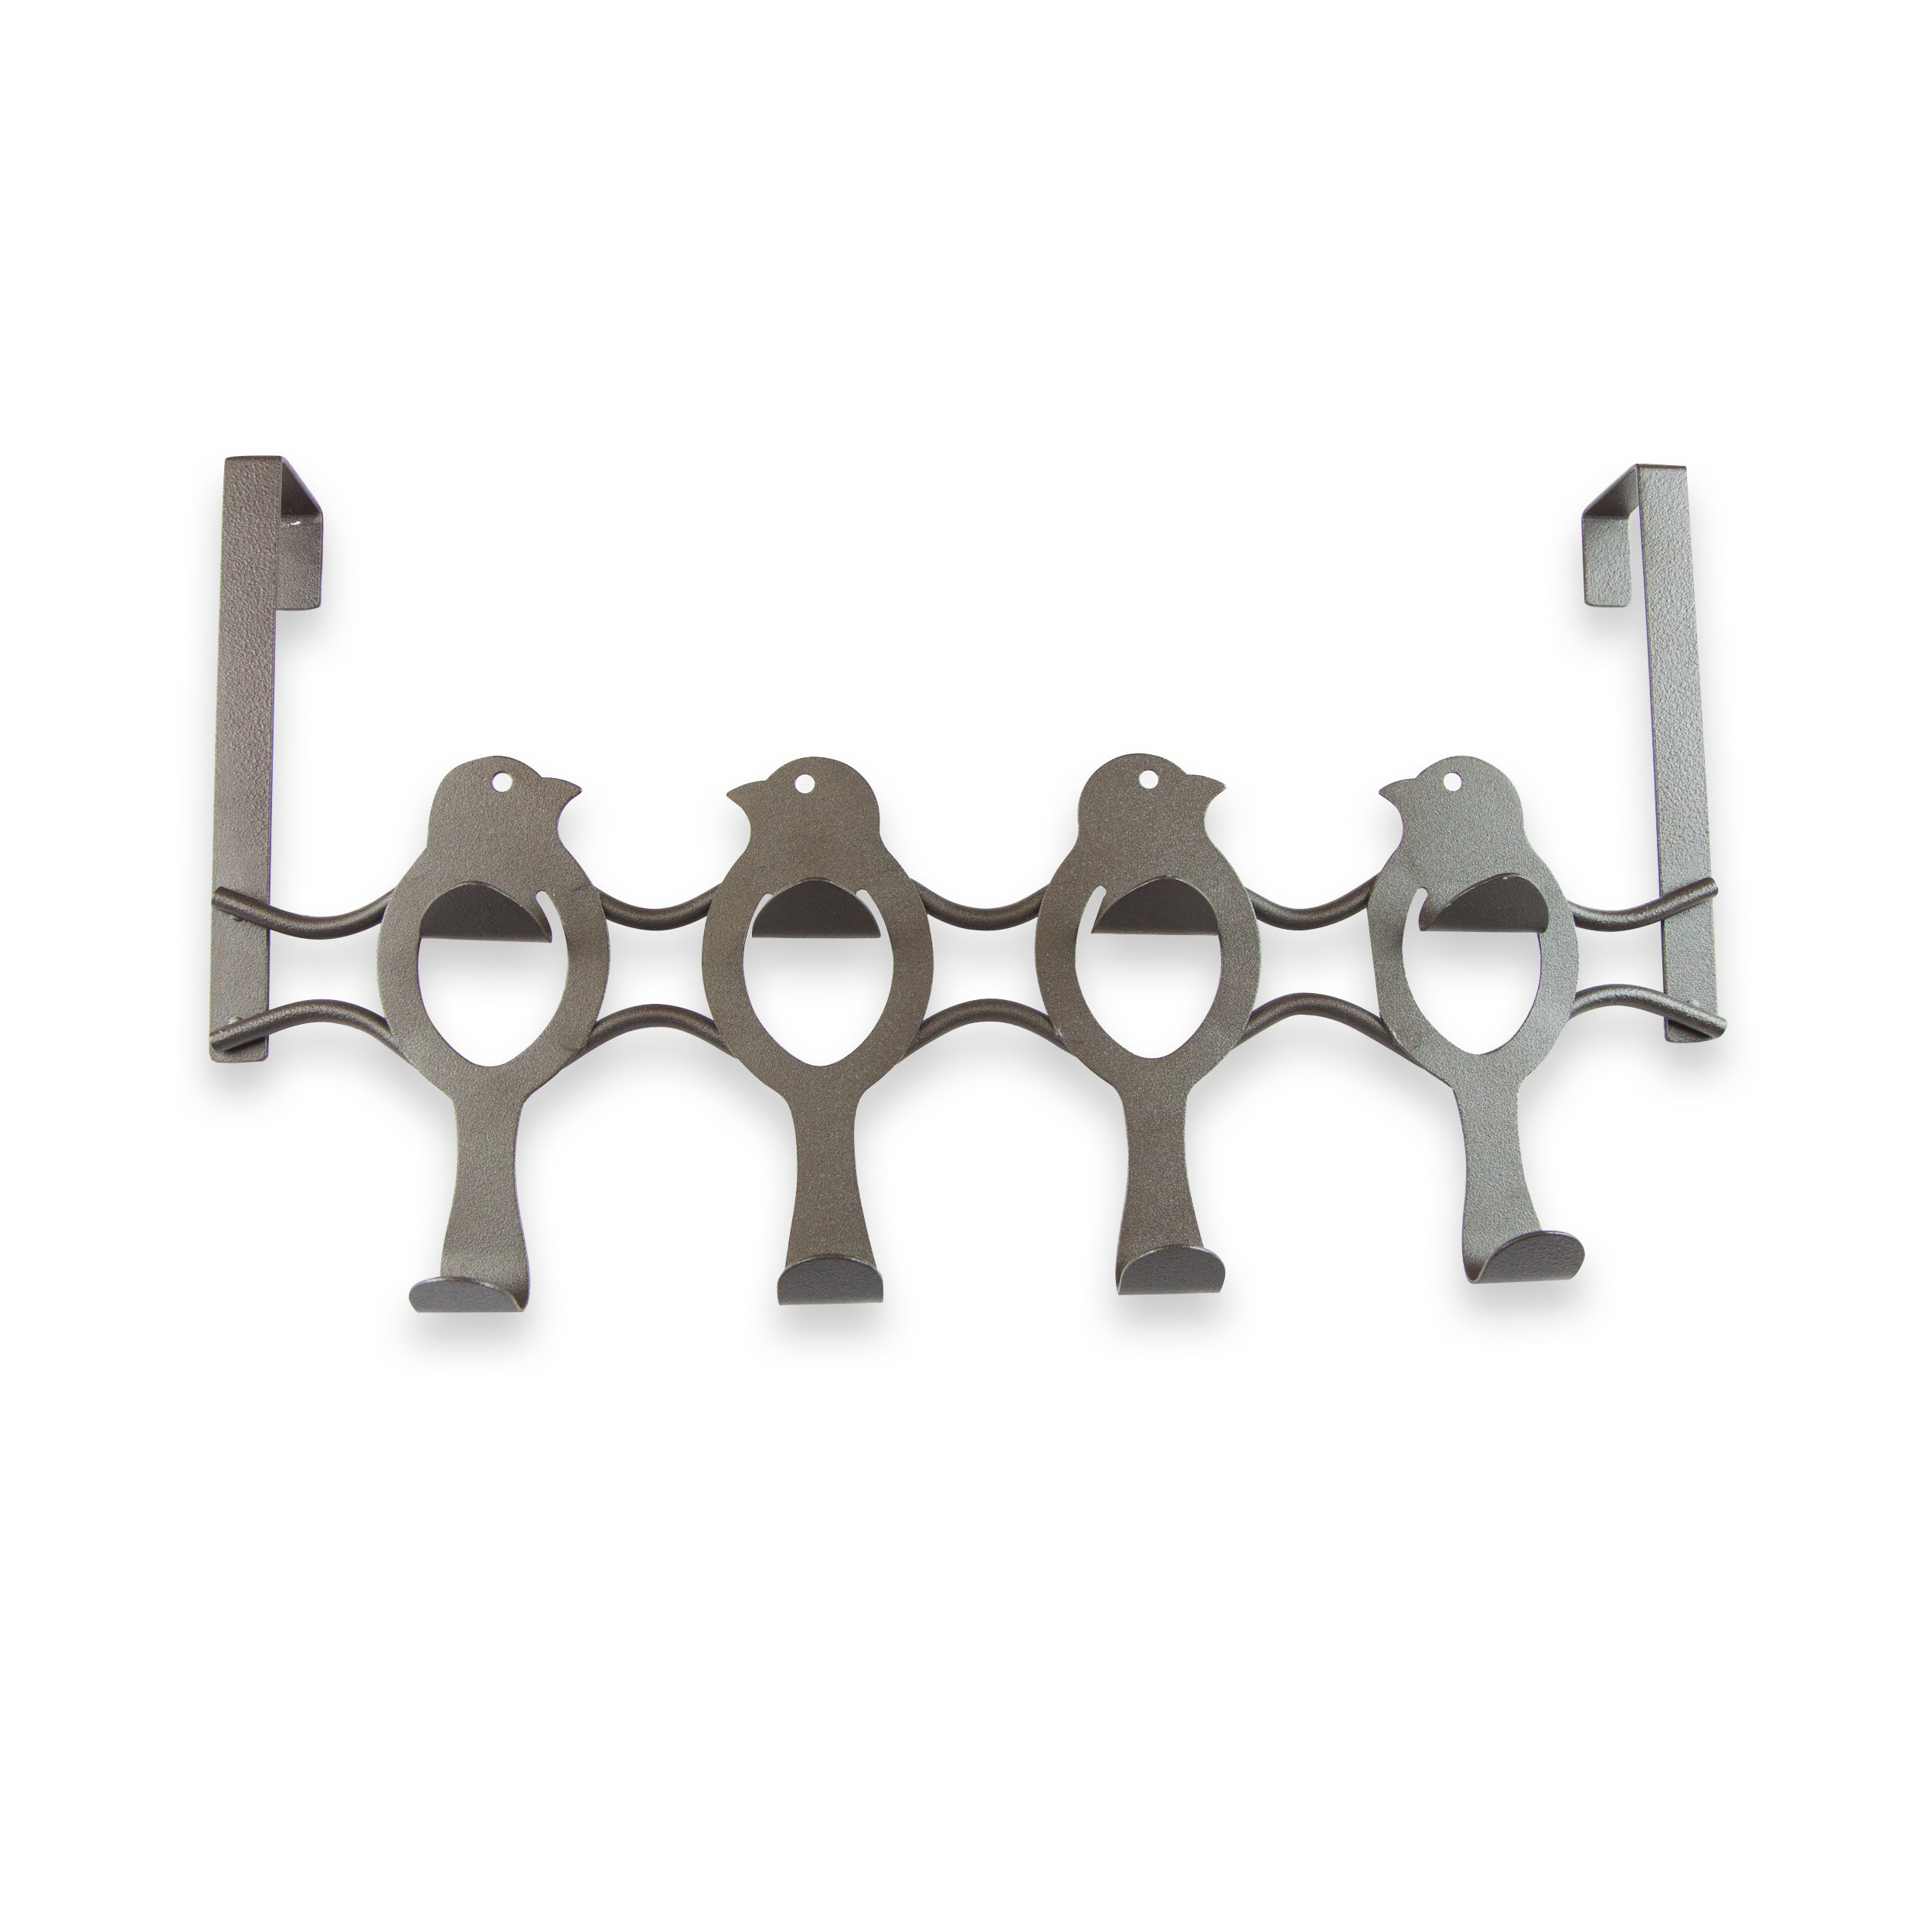 A&F Rod Decor - Over the Door Bird Organizer Hooks - 8 Hooks, Bronze by A&F Rod Décor